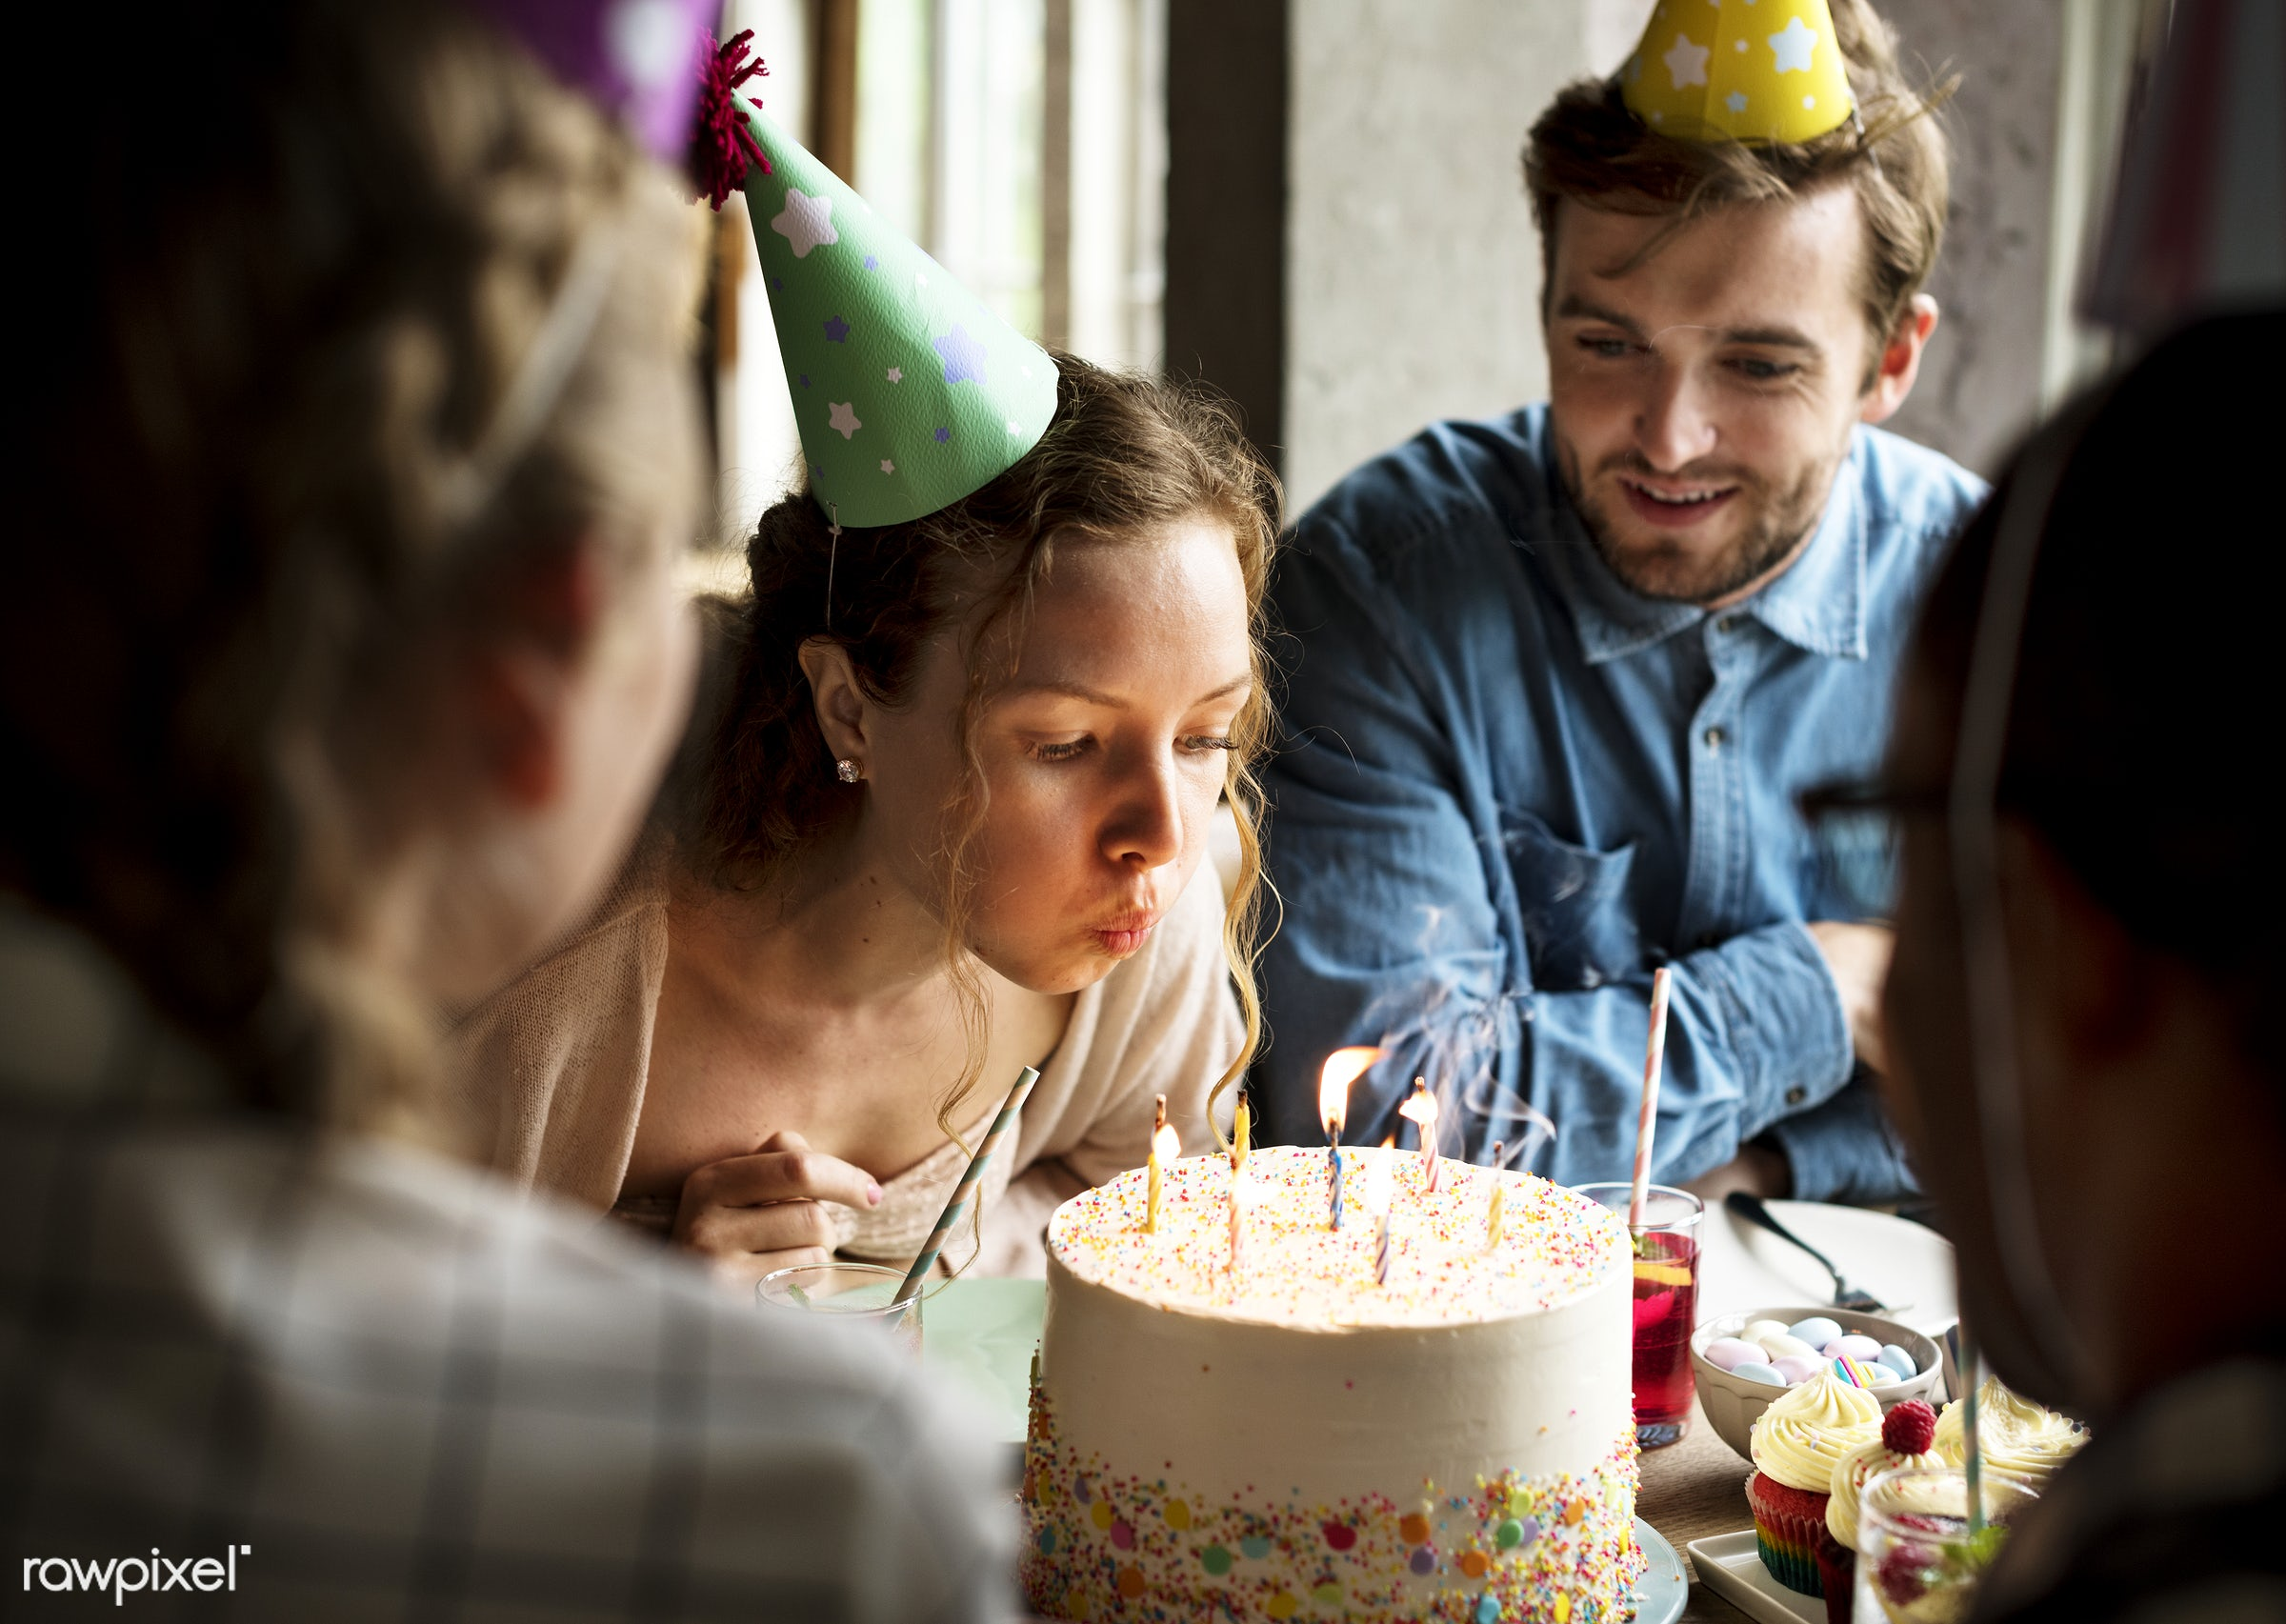 Woman Blowing Candles on Cake on Her Birthday Party Celebration - bakery, birthday, blowing, cakes, candles, celebrate,...